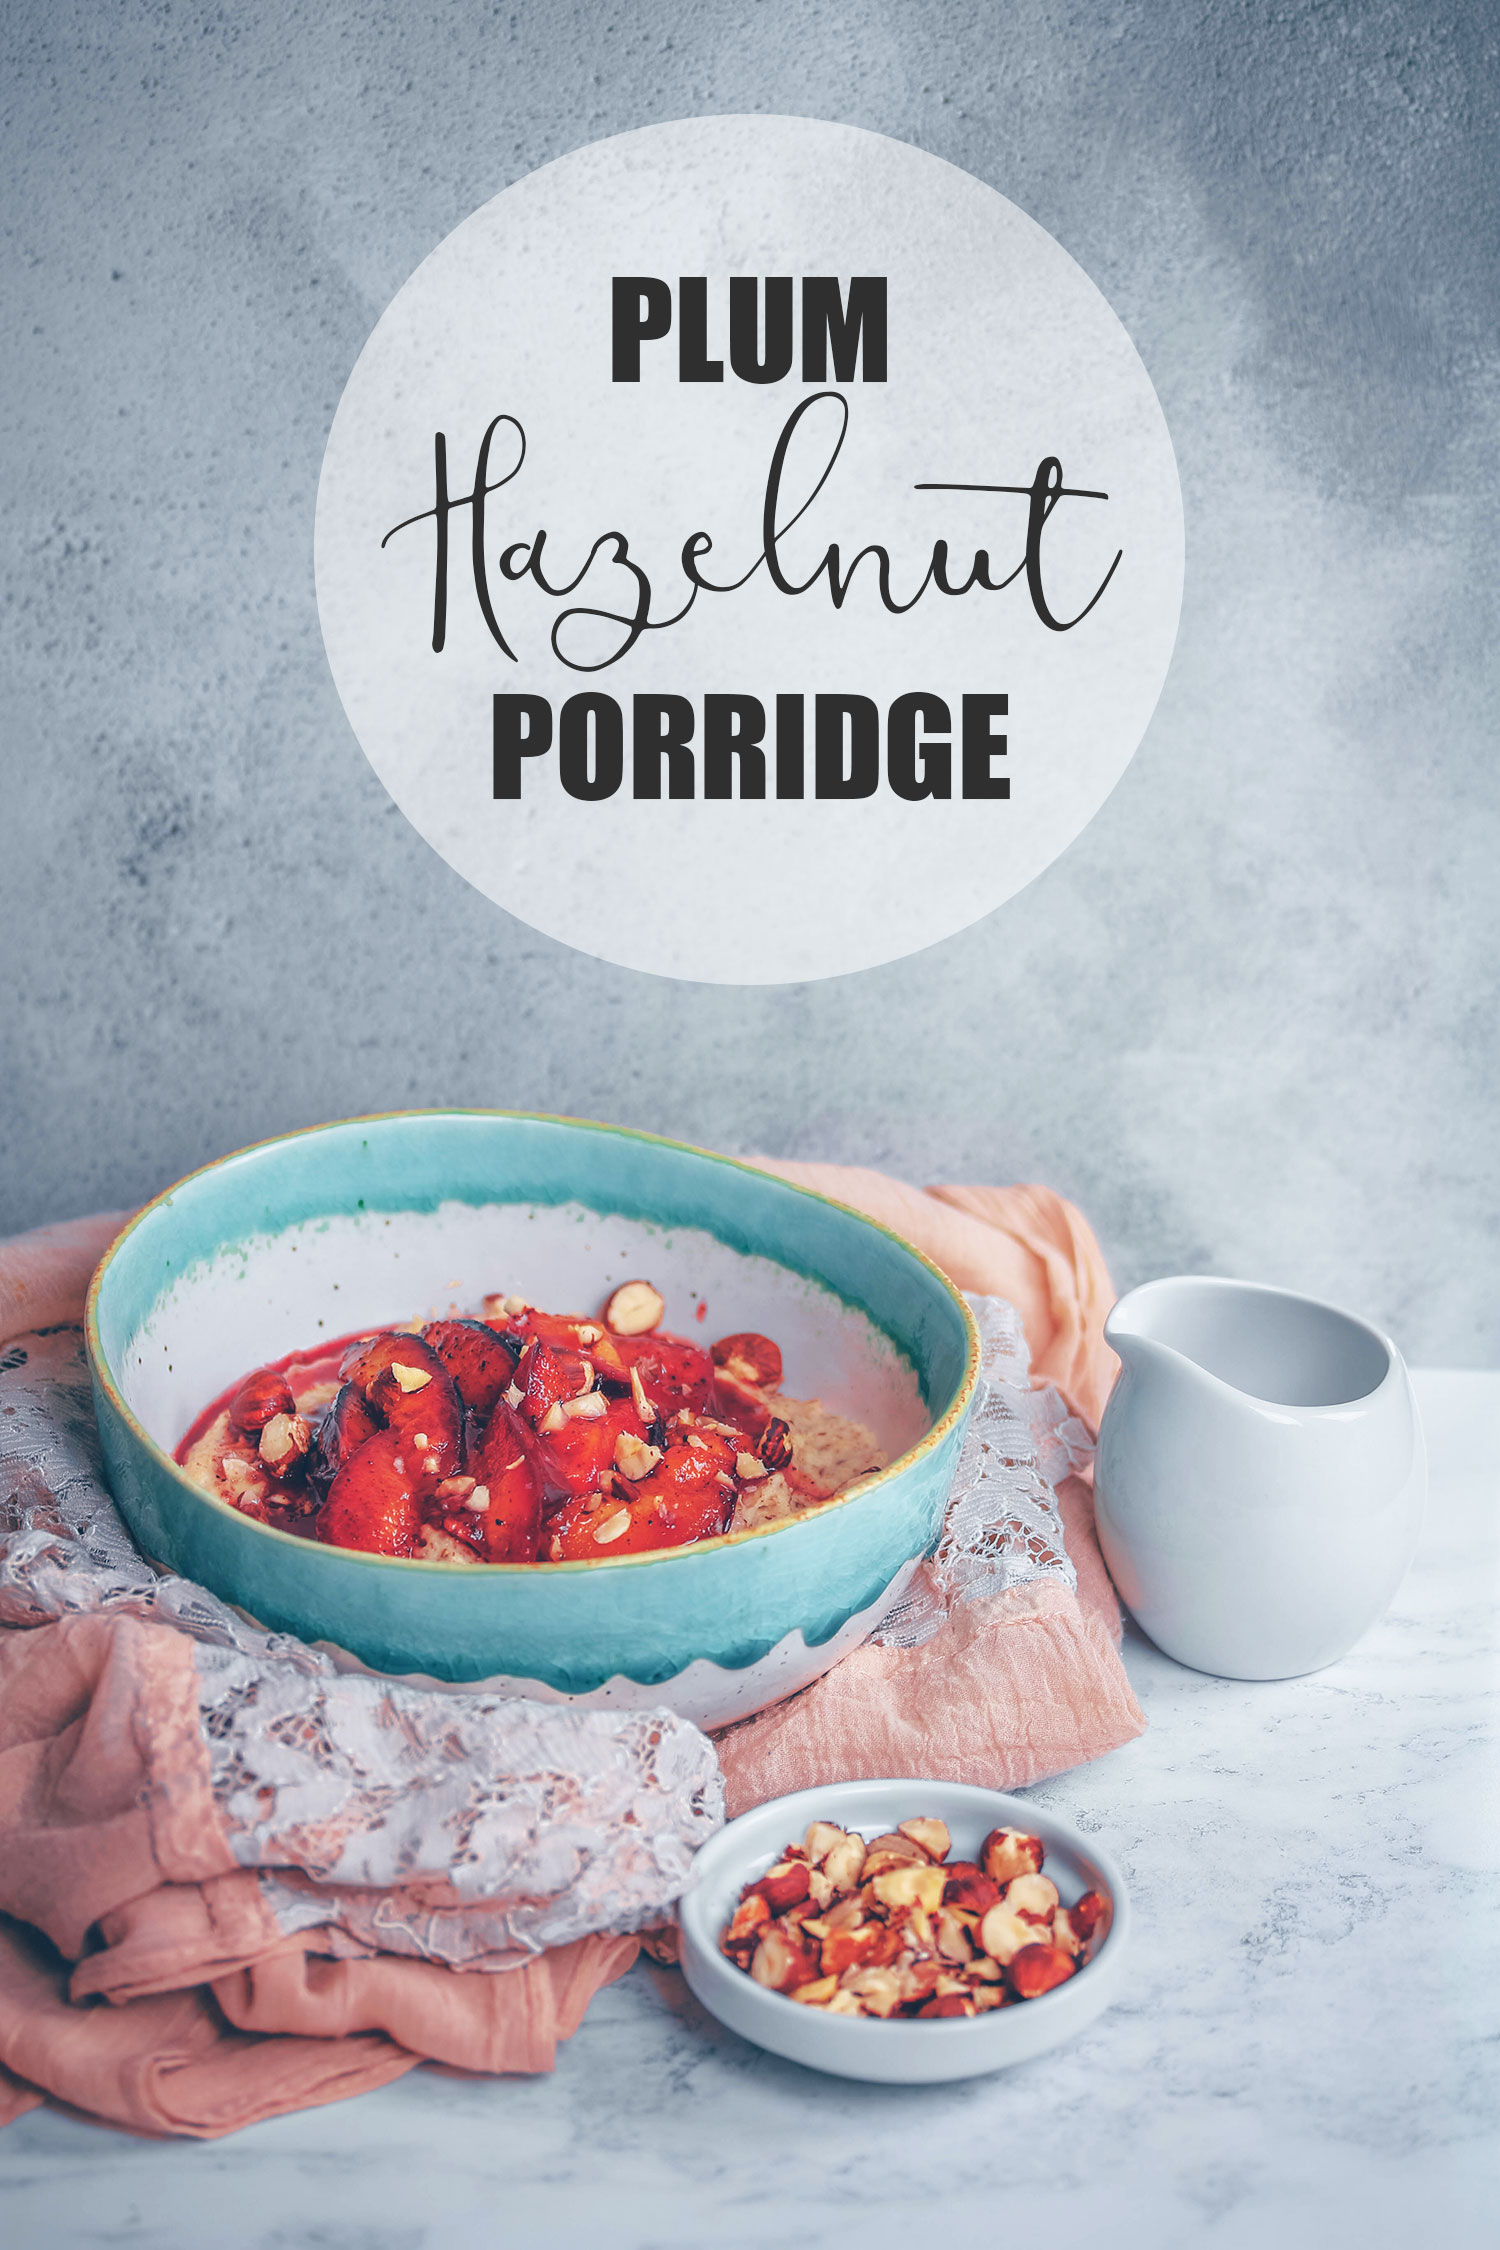 Plum Hazelnut Porridge